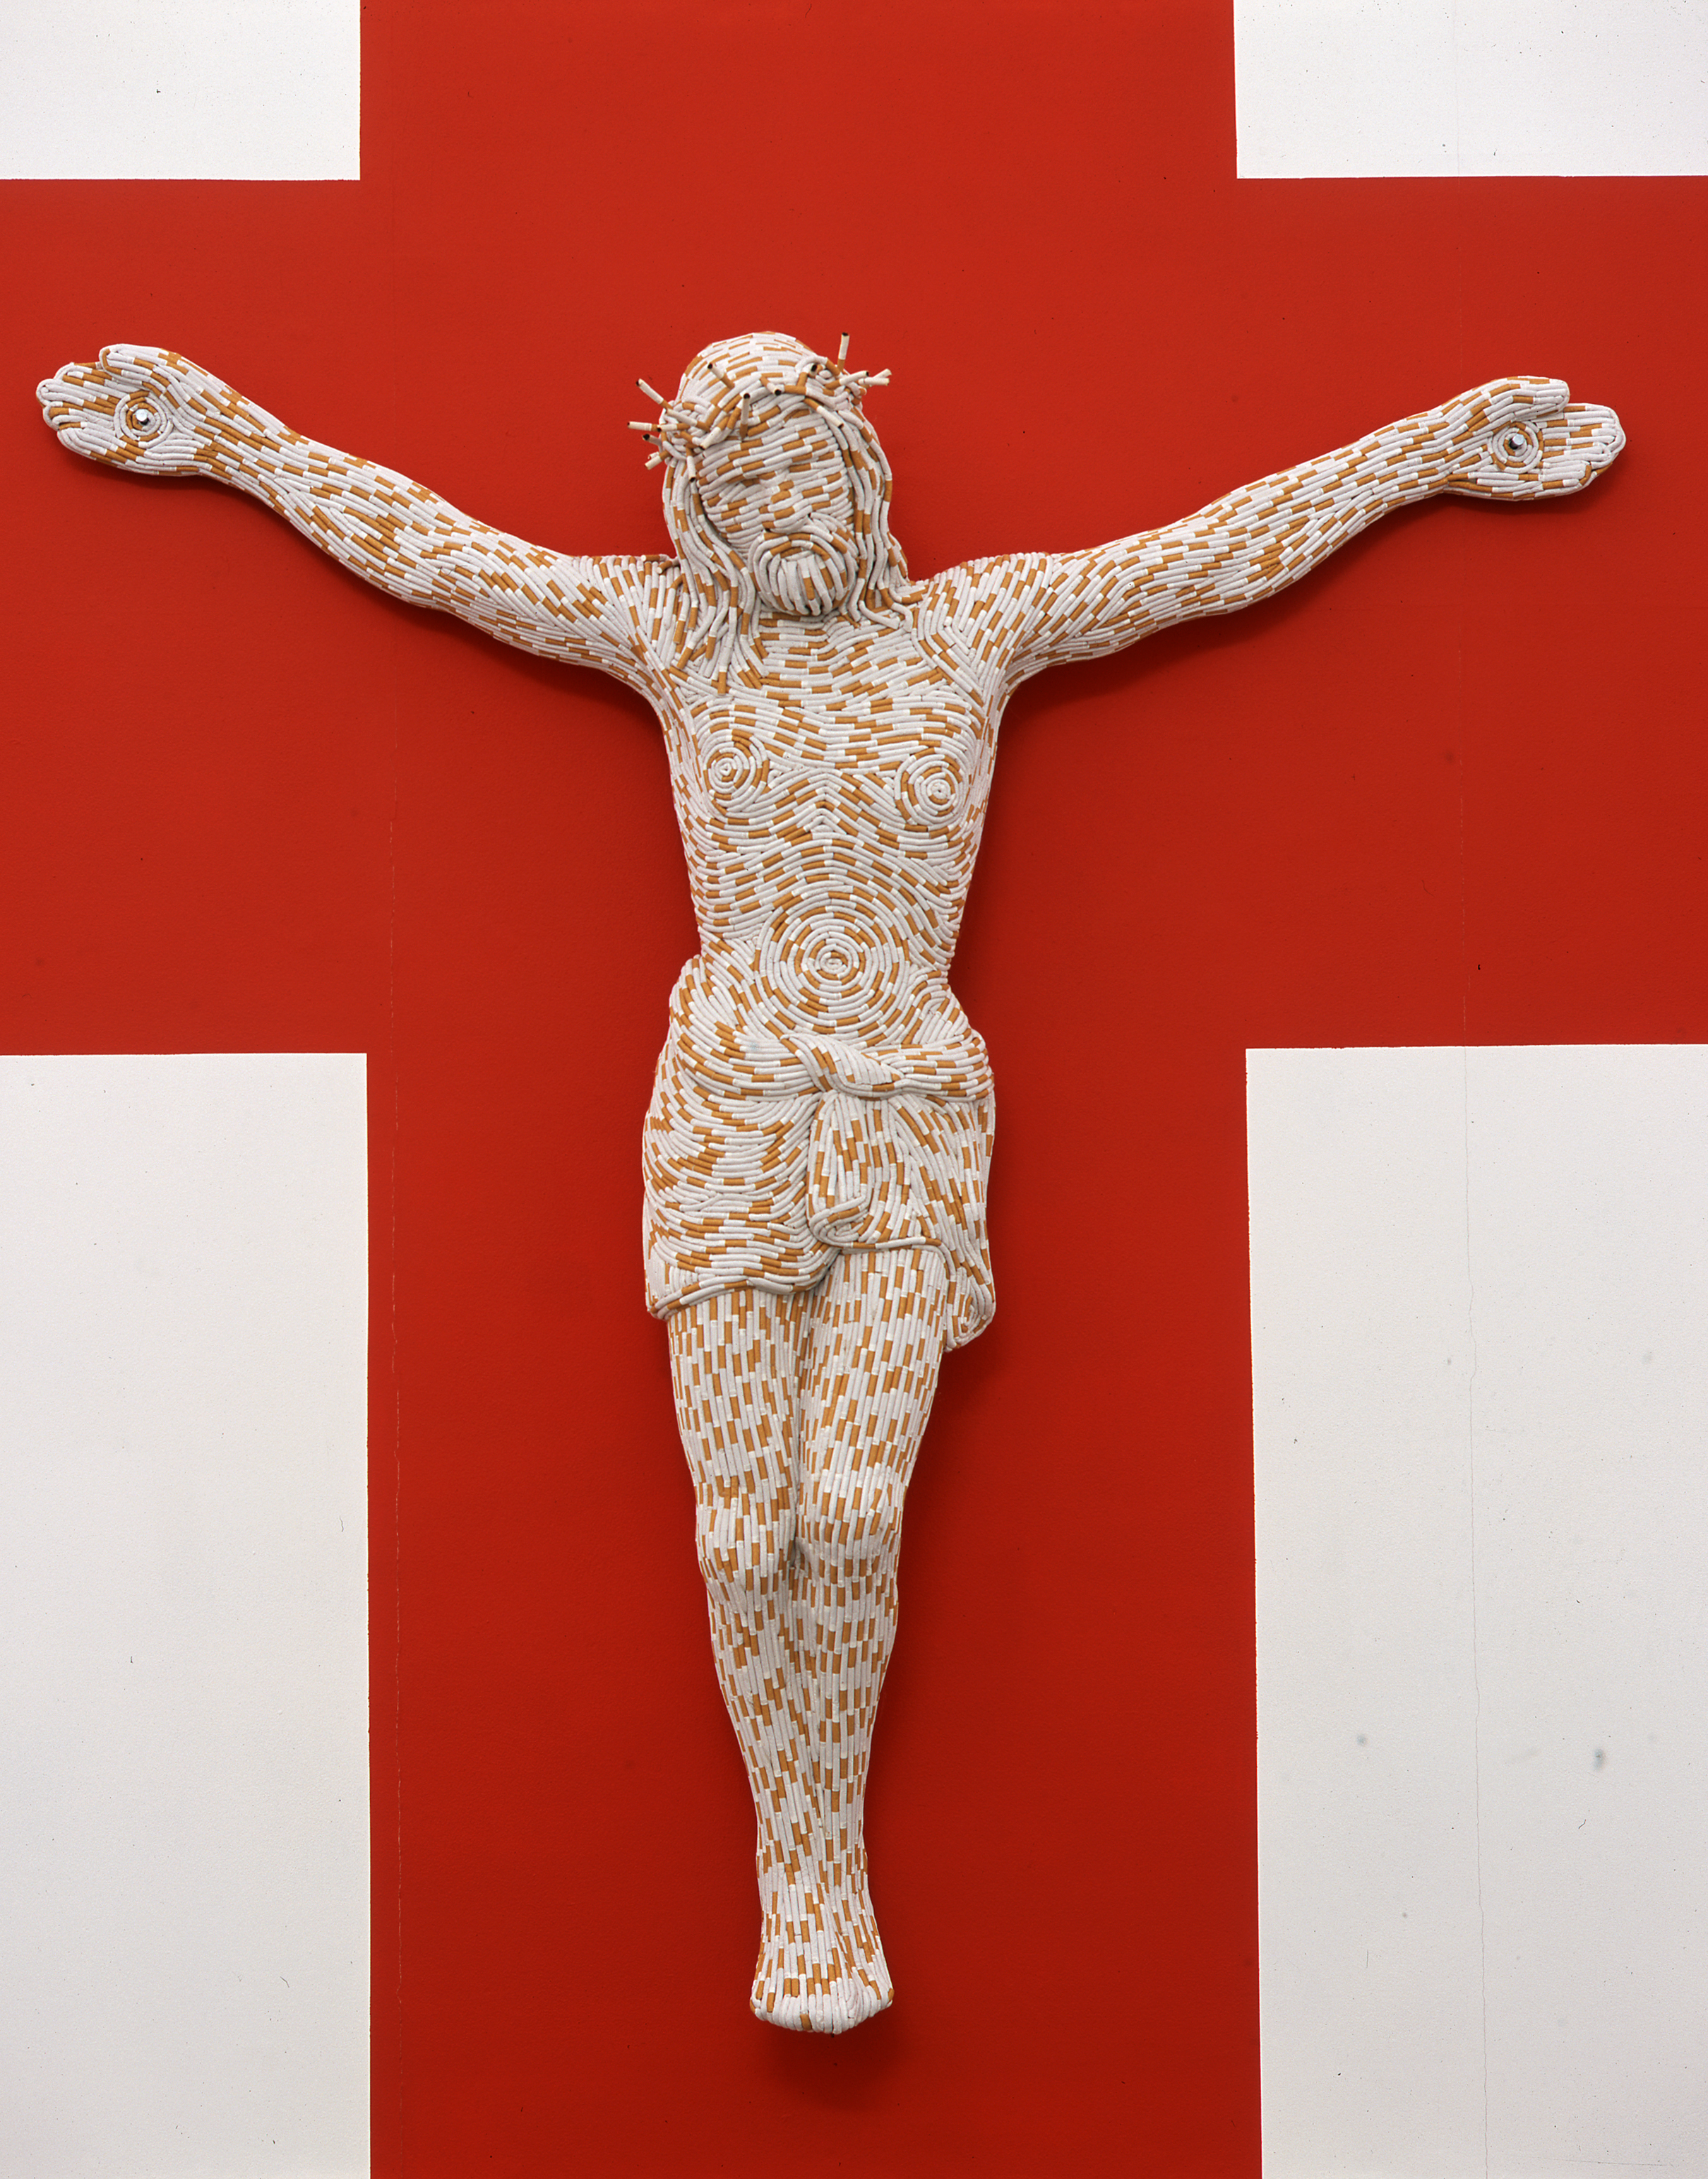 Christ You Know It Ain't Easy, 2003 Fiberglass and cigarettes 77 x 72 x 16 in (195.6 x 182.9 x 40.6 cm) Courtesy the artist and Sadie Coles HQ, London